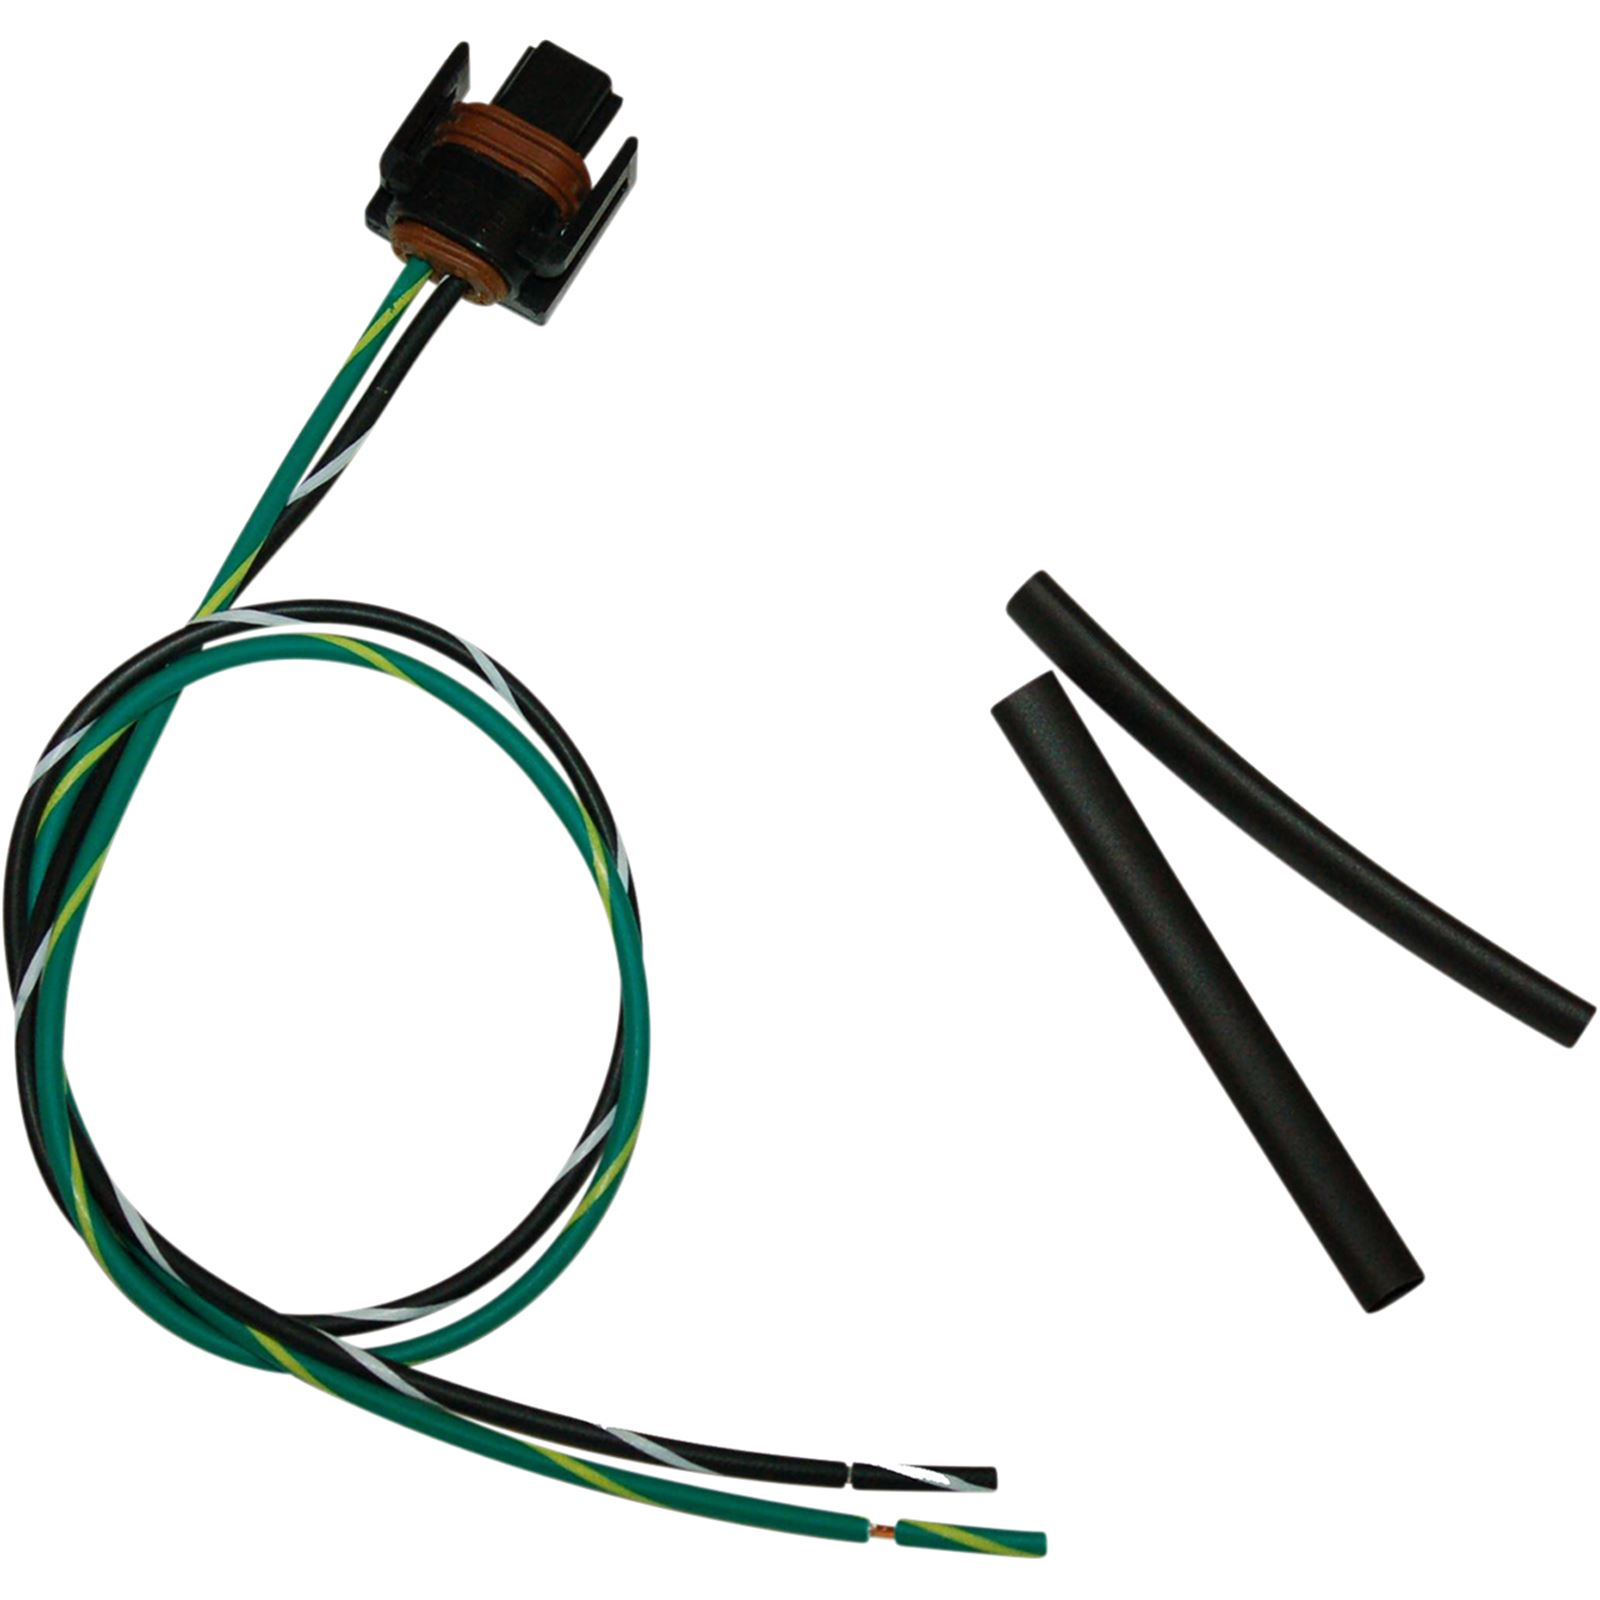 Namz Connector with Wire Pigtail - OEM-Type